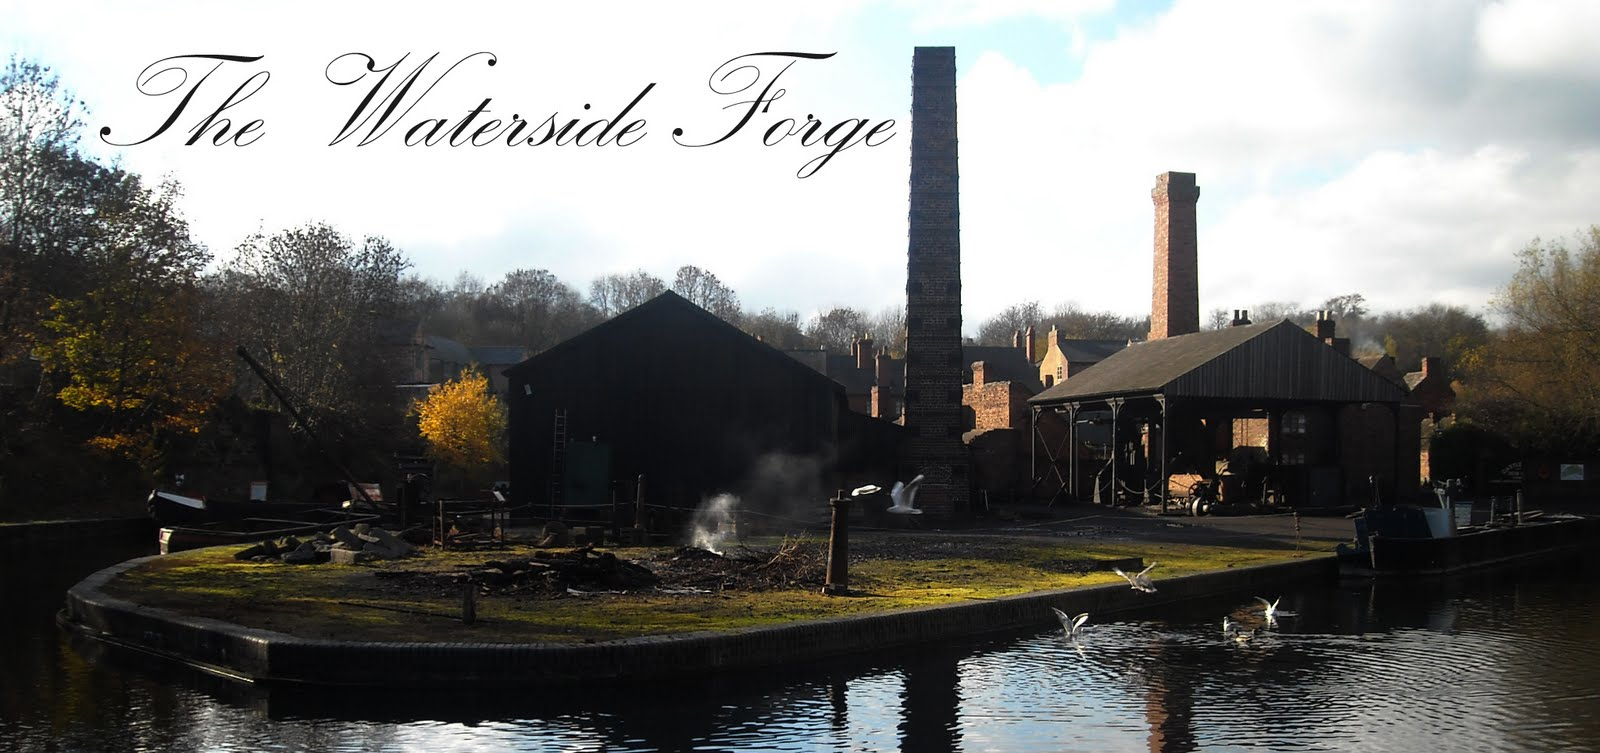 The Waterside Forge